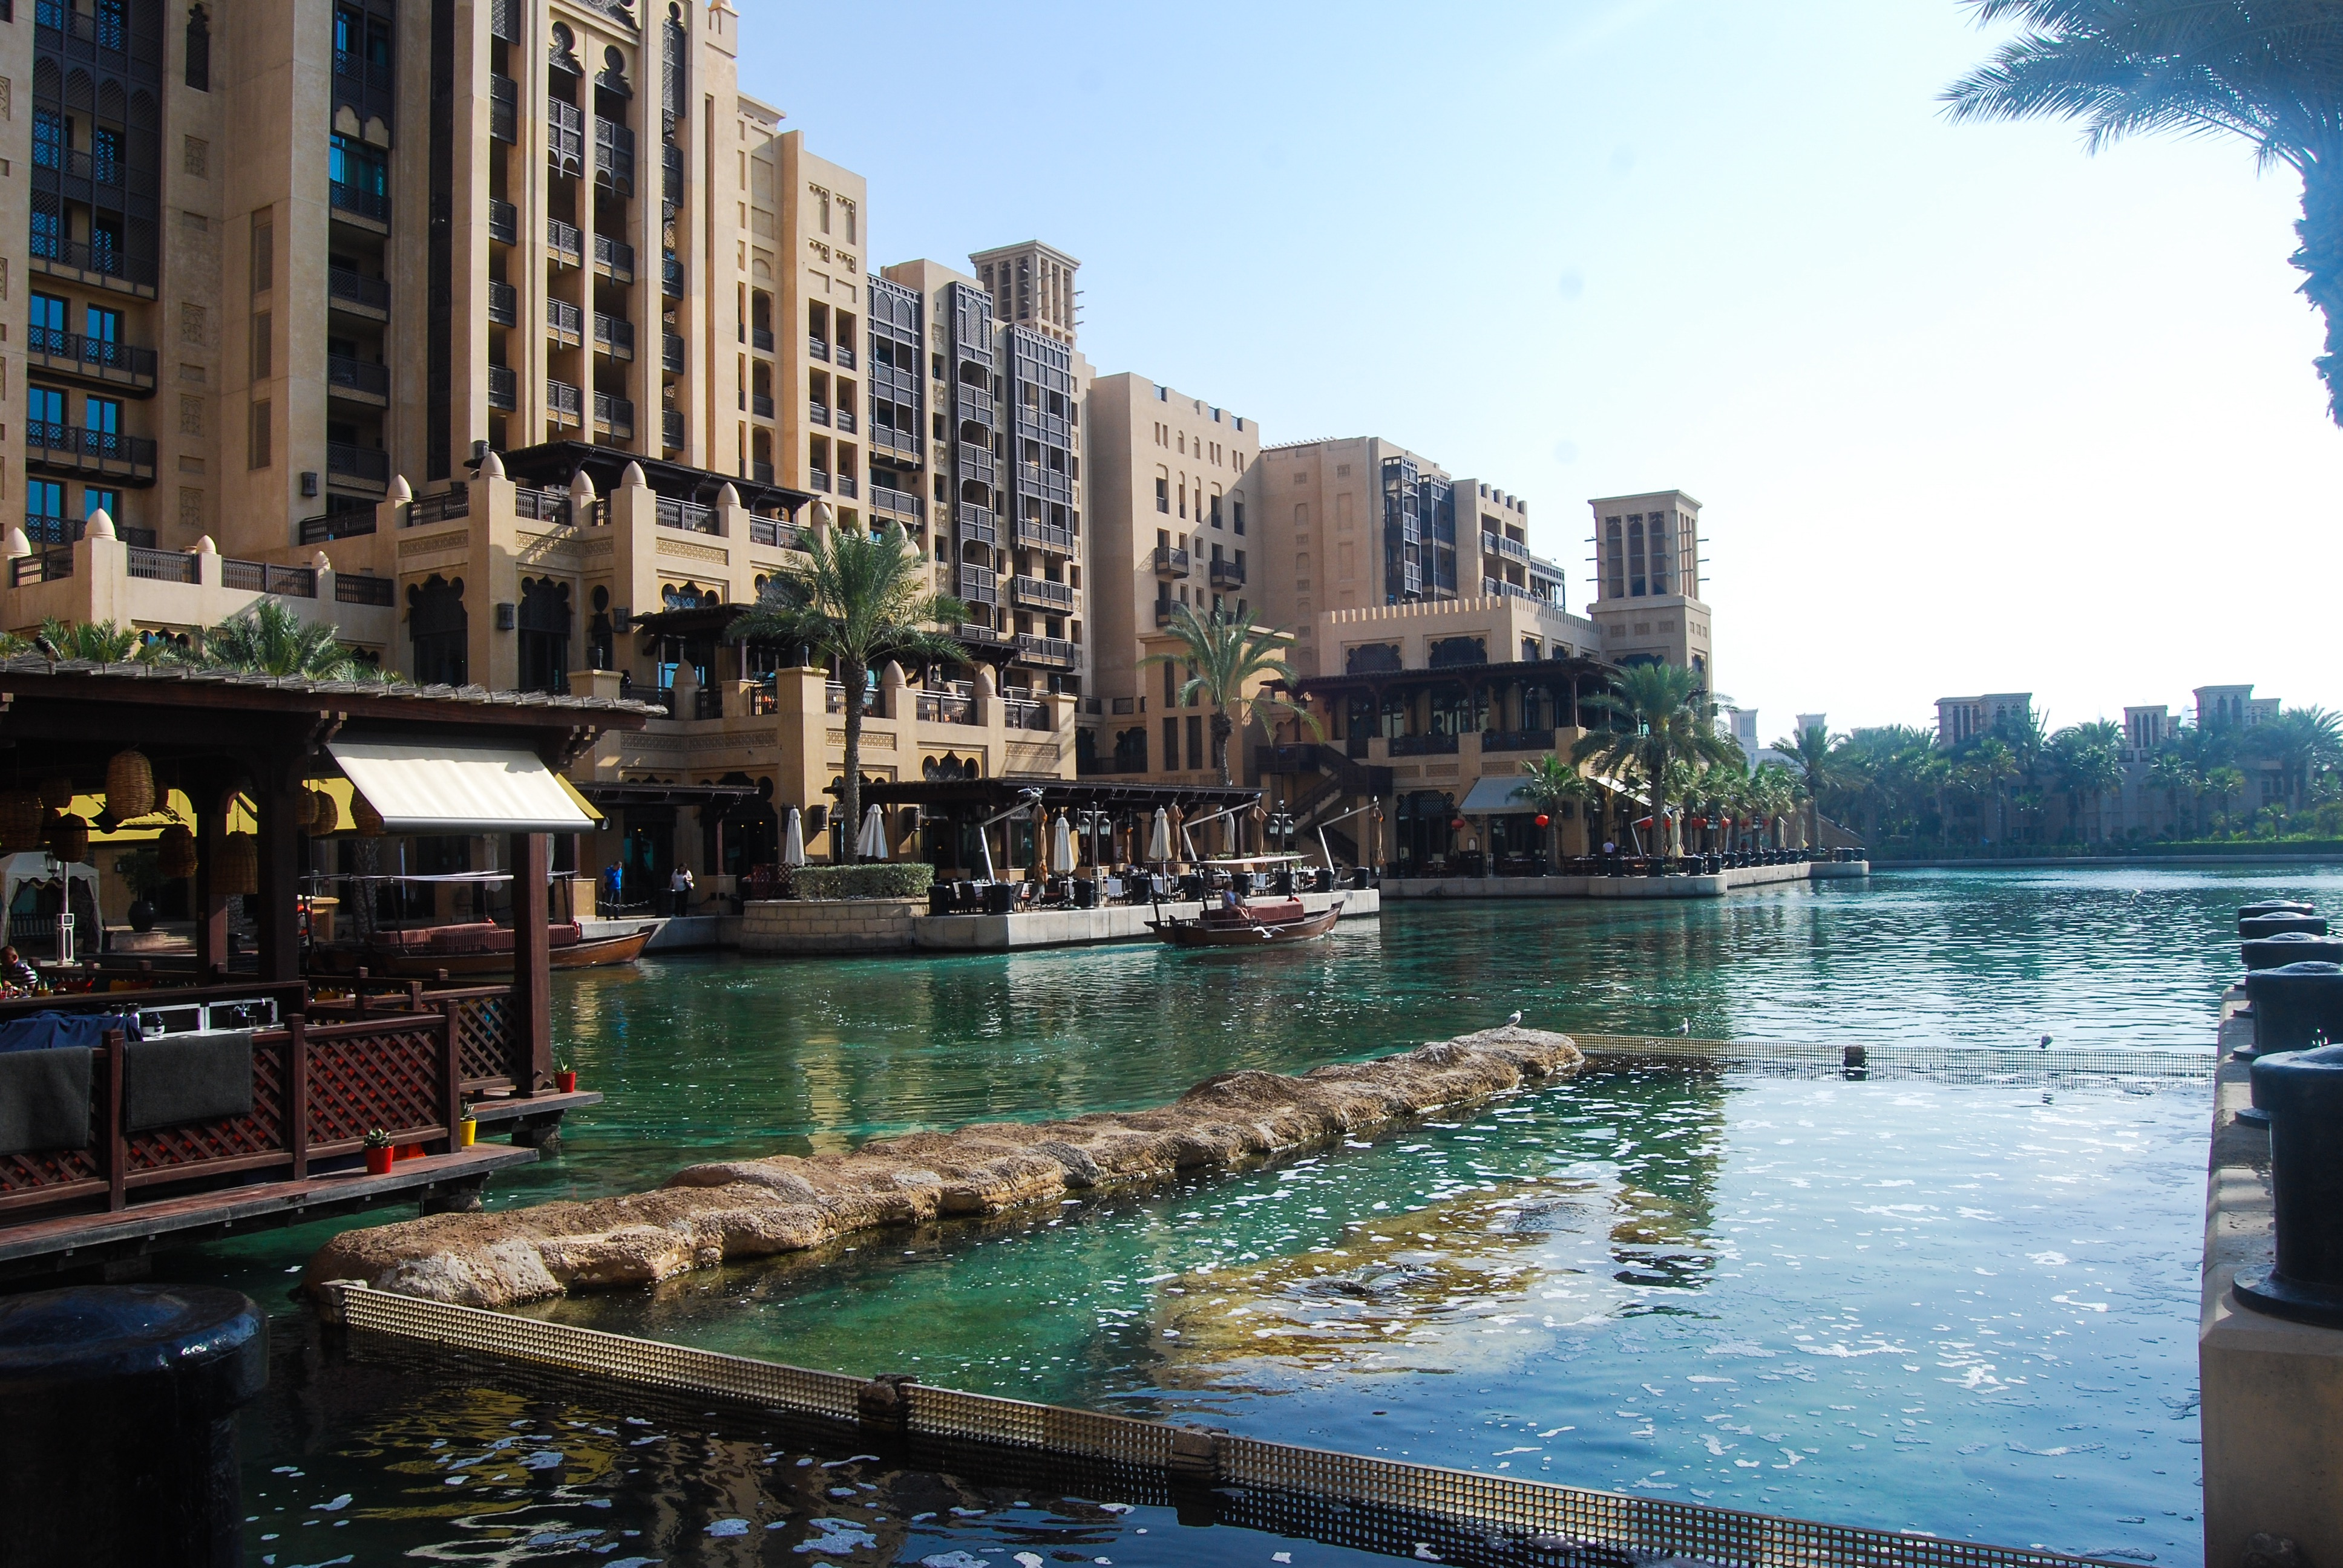 UAE: Jumeriah Hotels in Dubai | Breezing Through